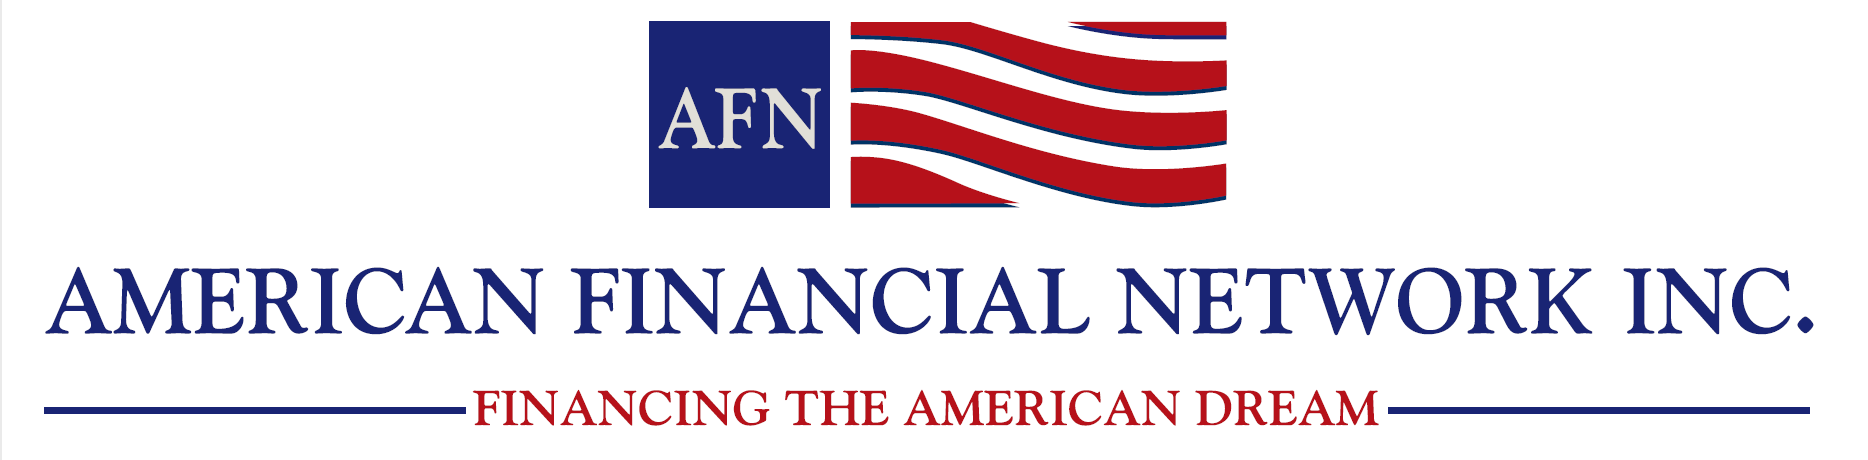 American Financial Network Inc.